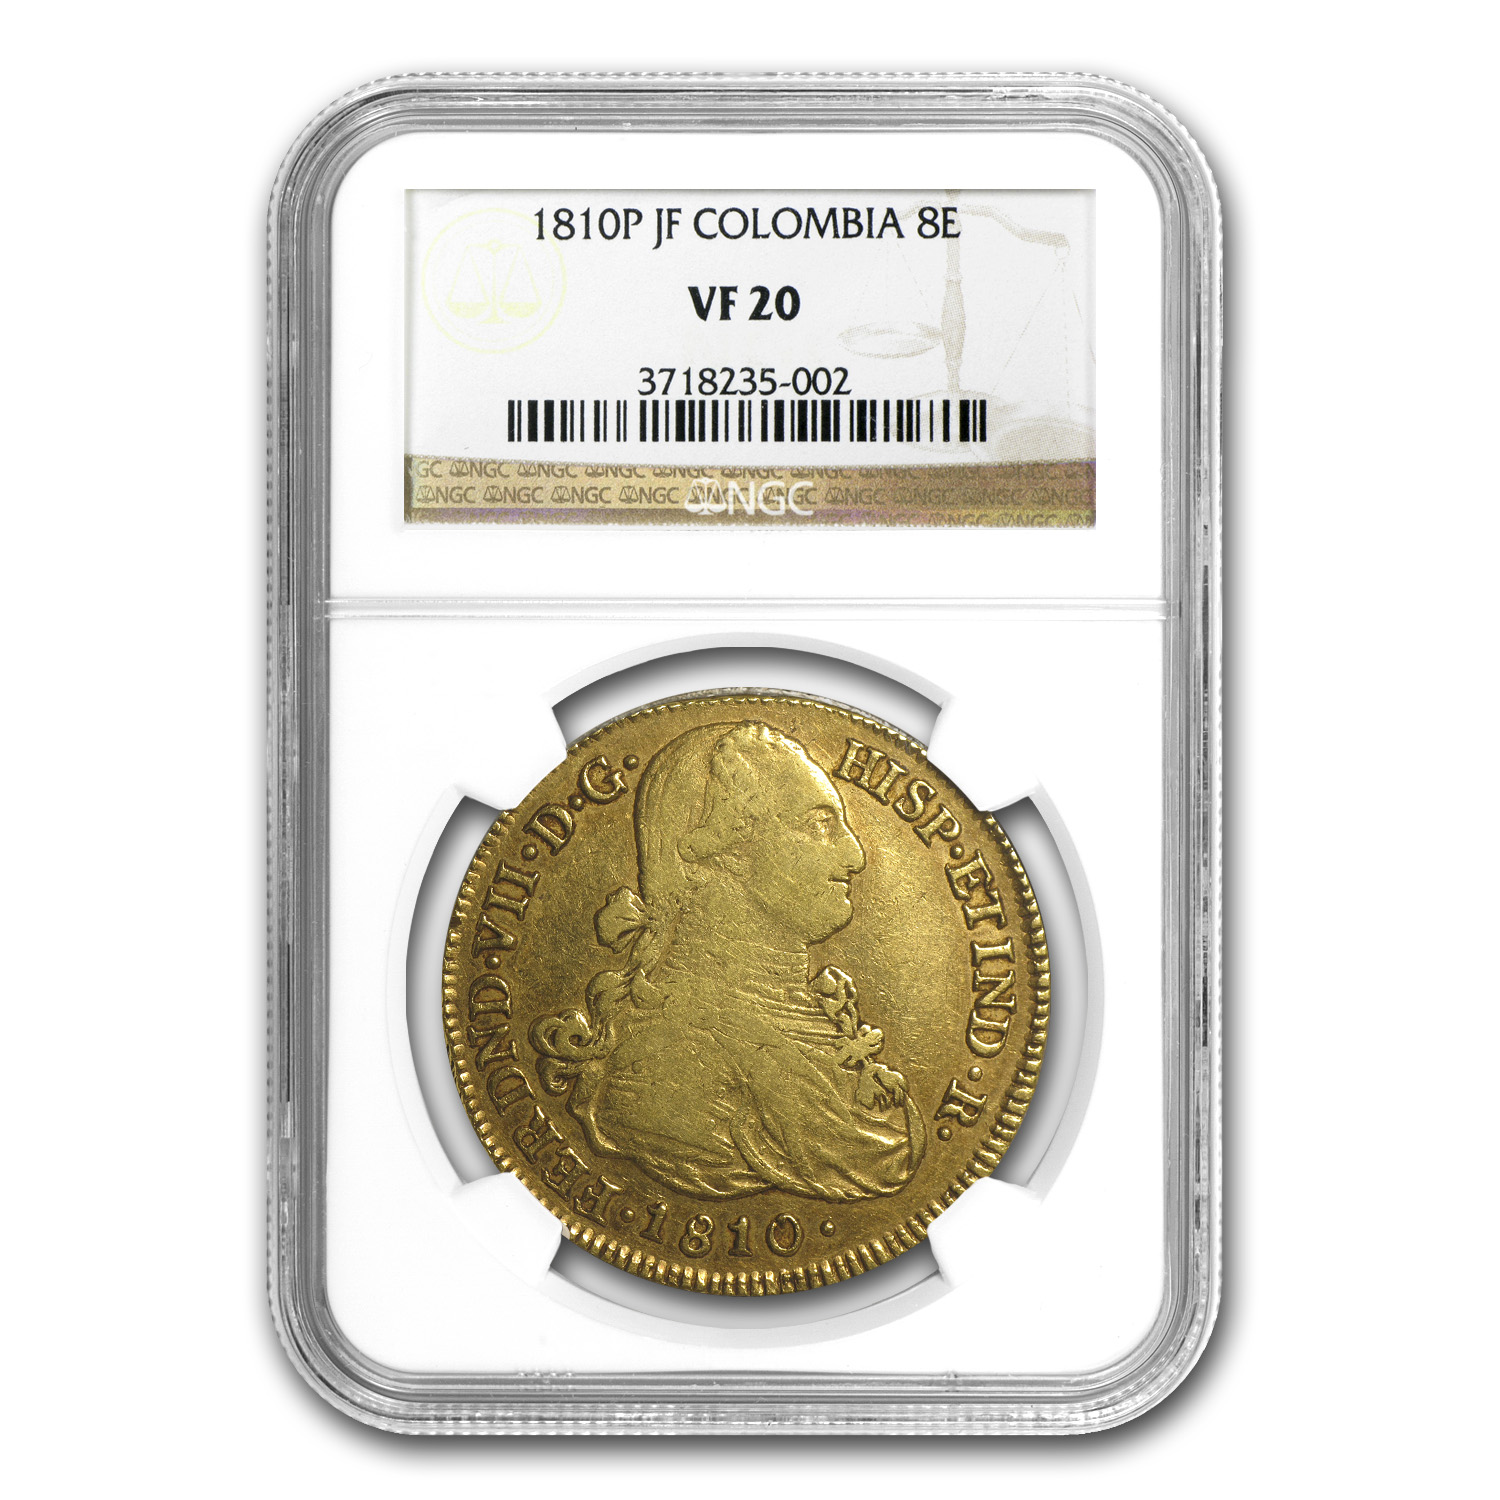 Colombia 1810 P-JF 8 Escudo Gold Ferdinand VII VF-20 NGC